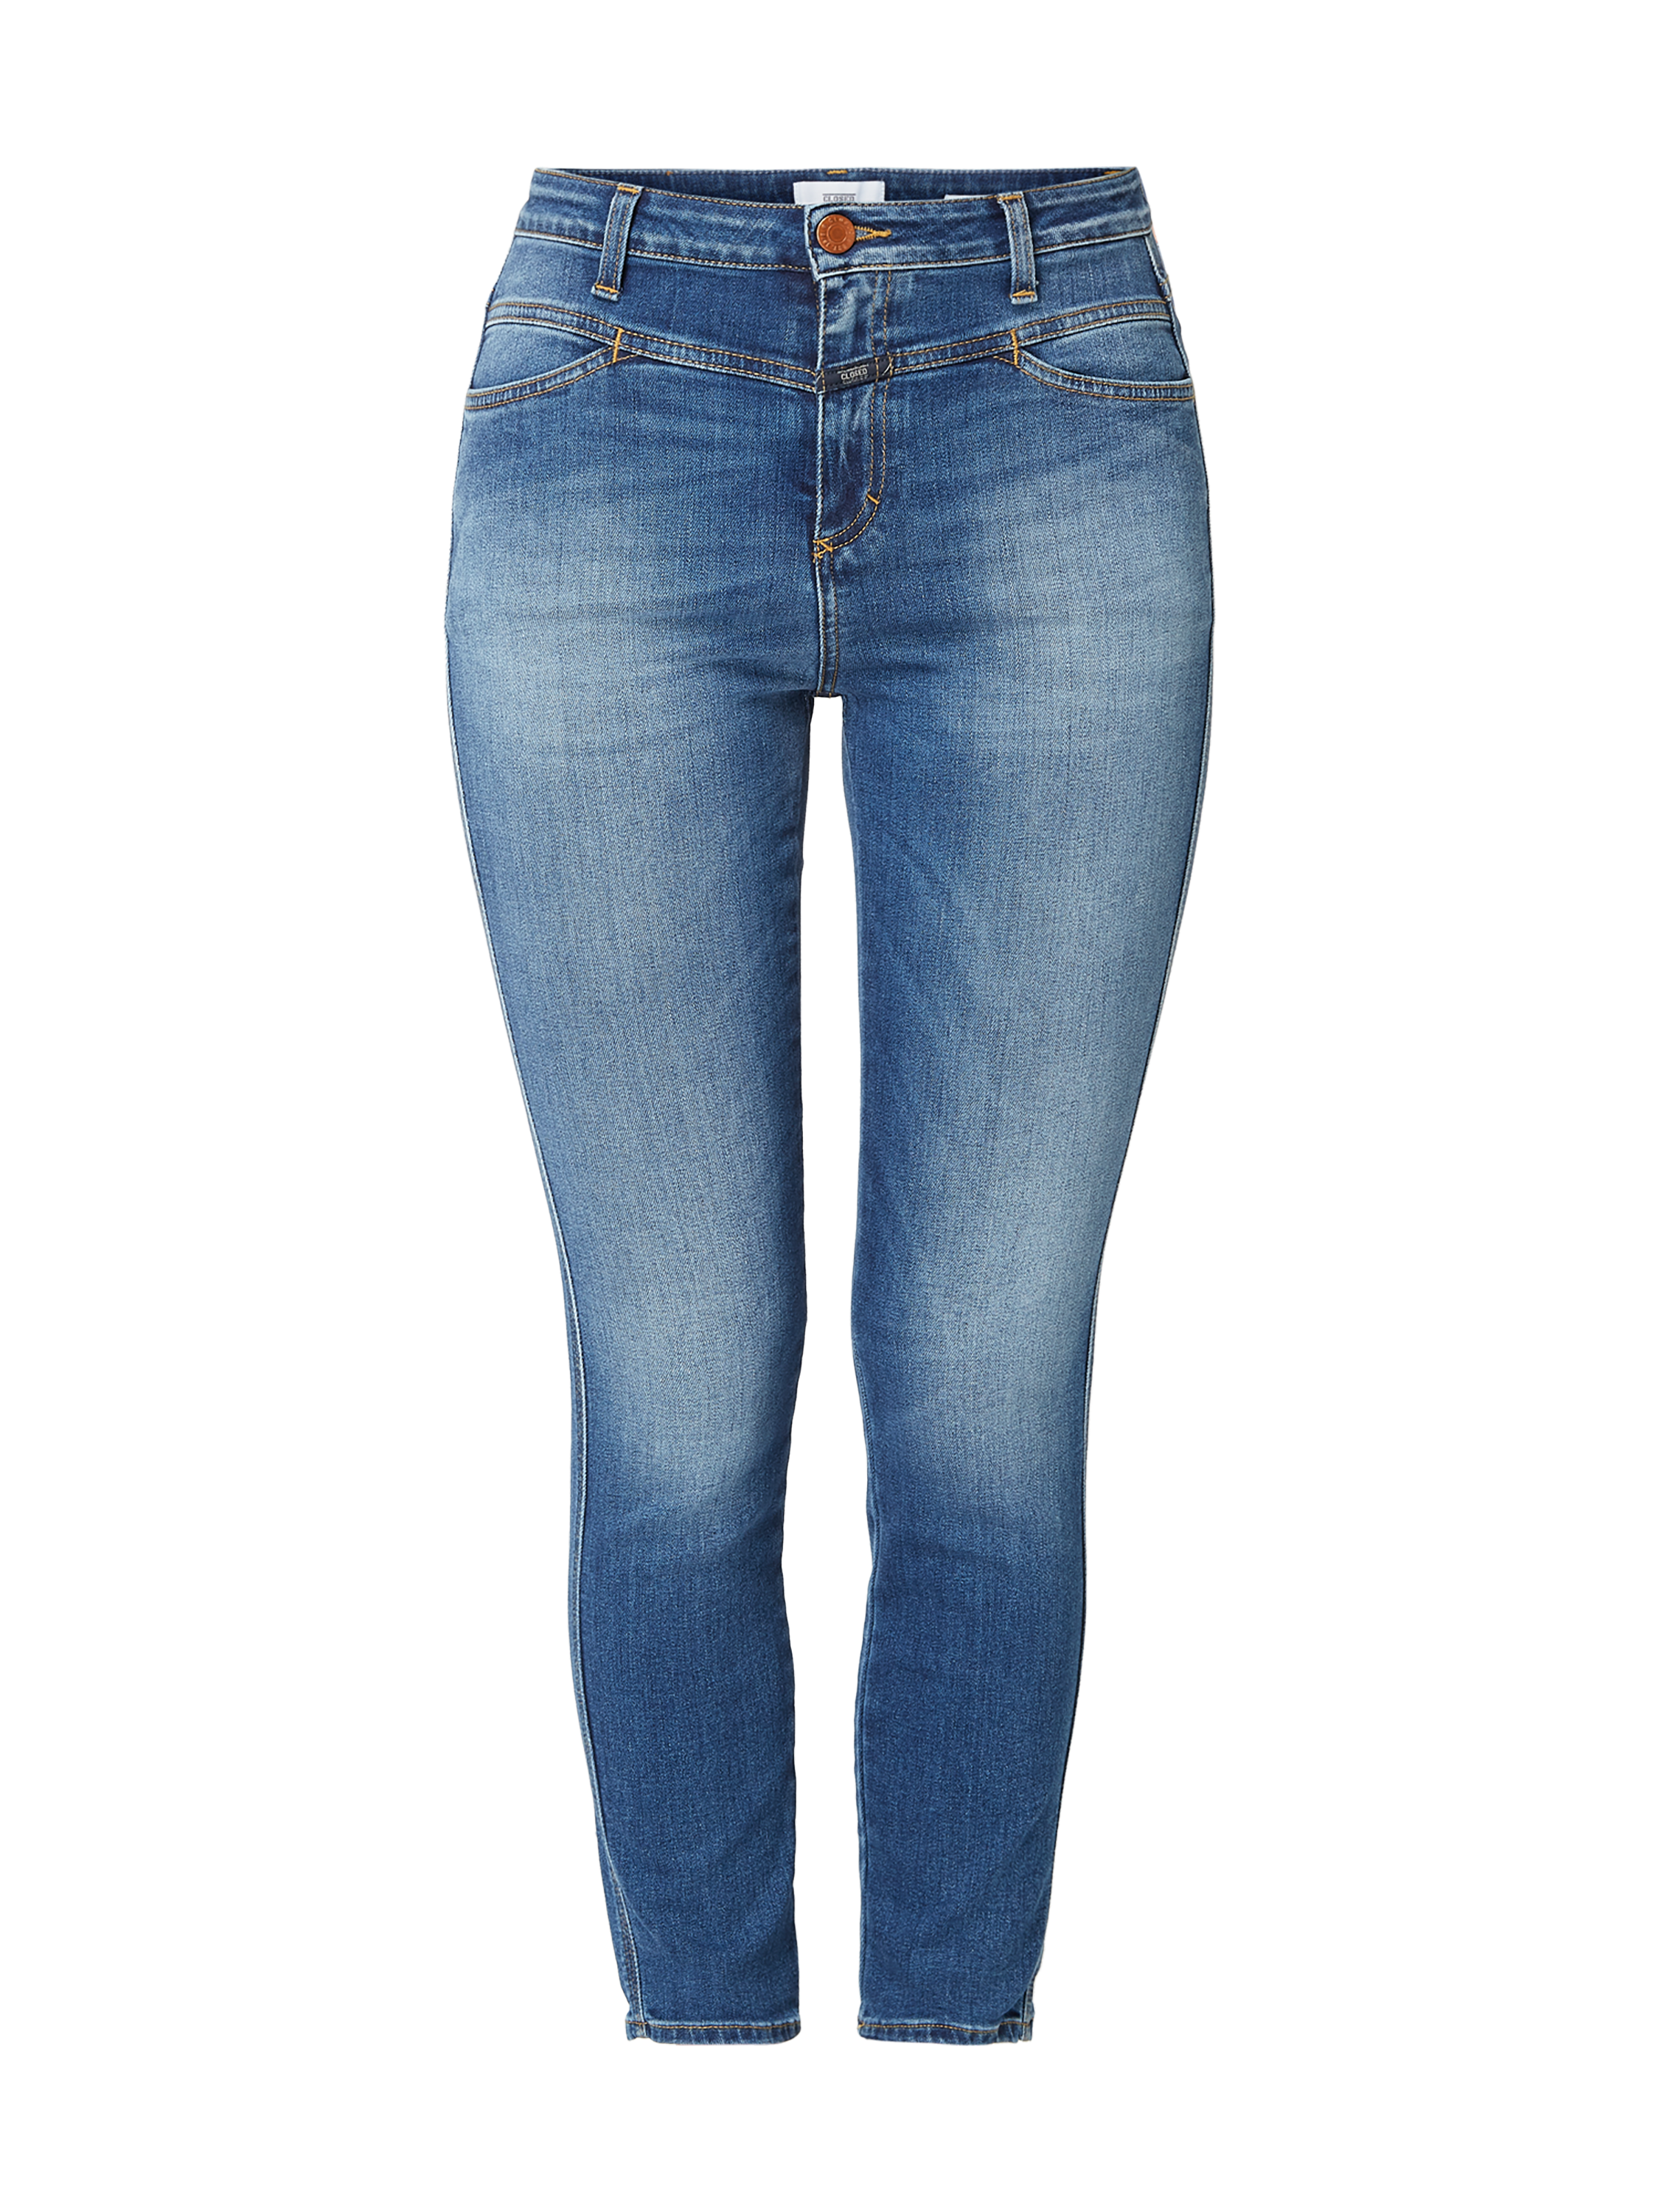 Closed – Stone Washed Skinny Fit Jeans, – Jeans